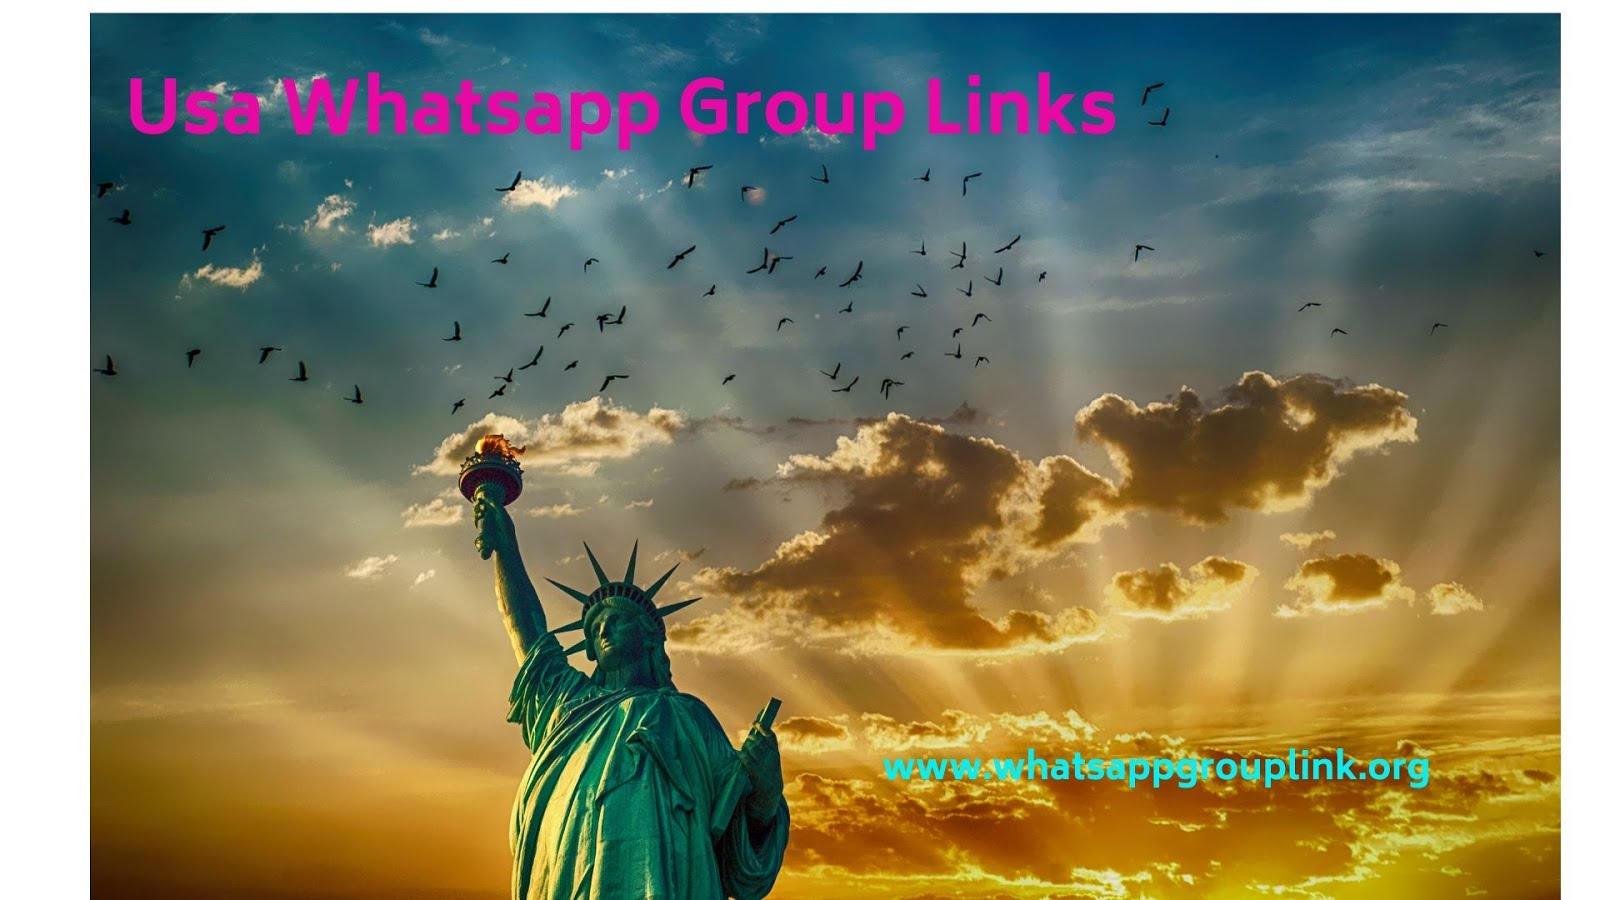 Whatsapp Group Link: Usa Whatsapp Group Links